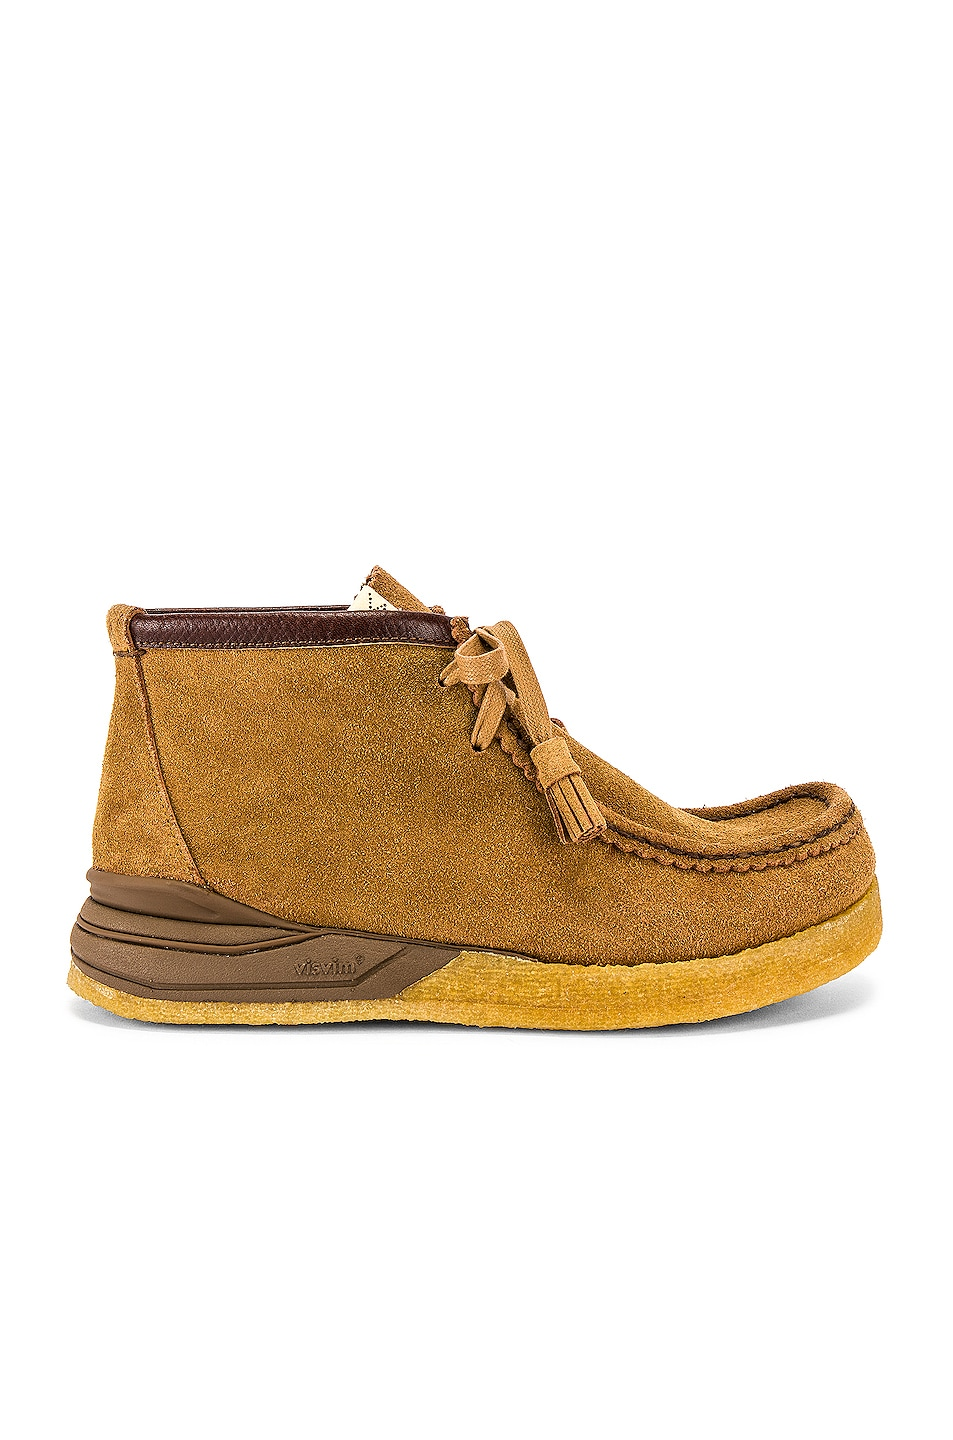 Image 2 of Visvim Sneaker Ankle Moccasin in Camel